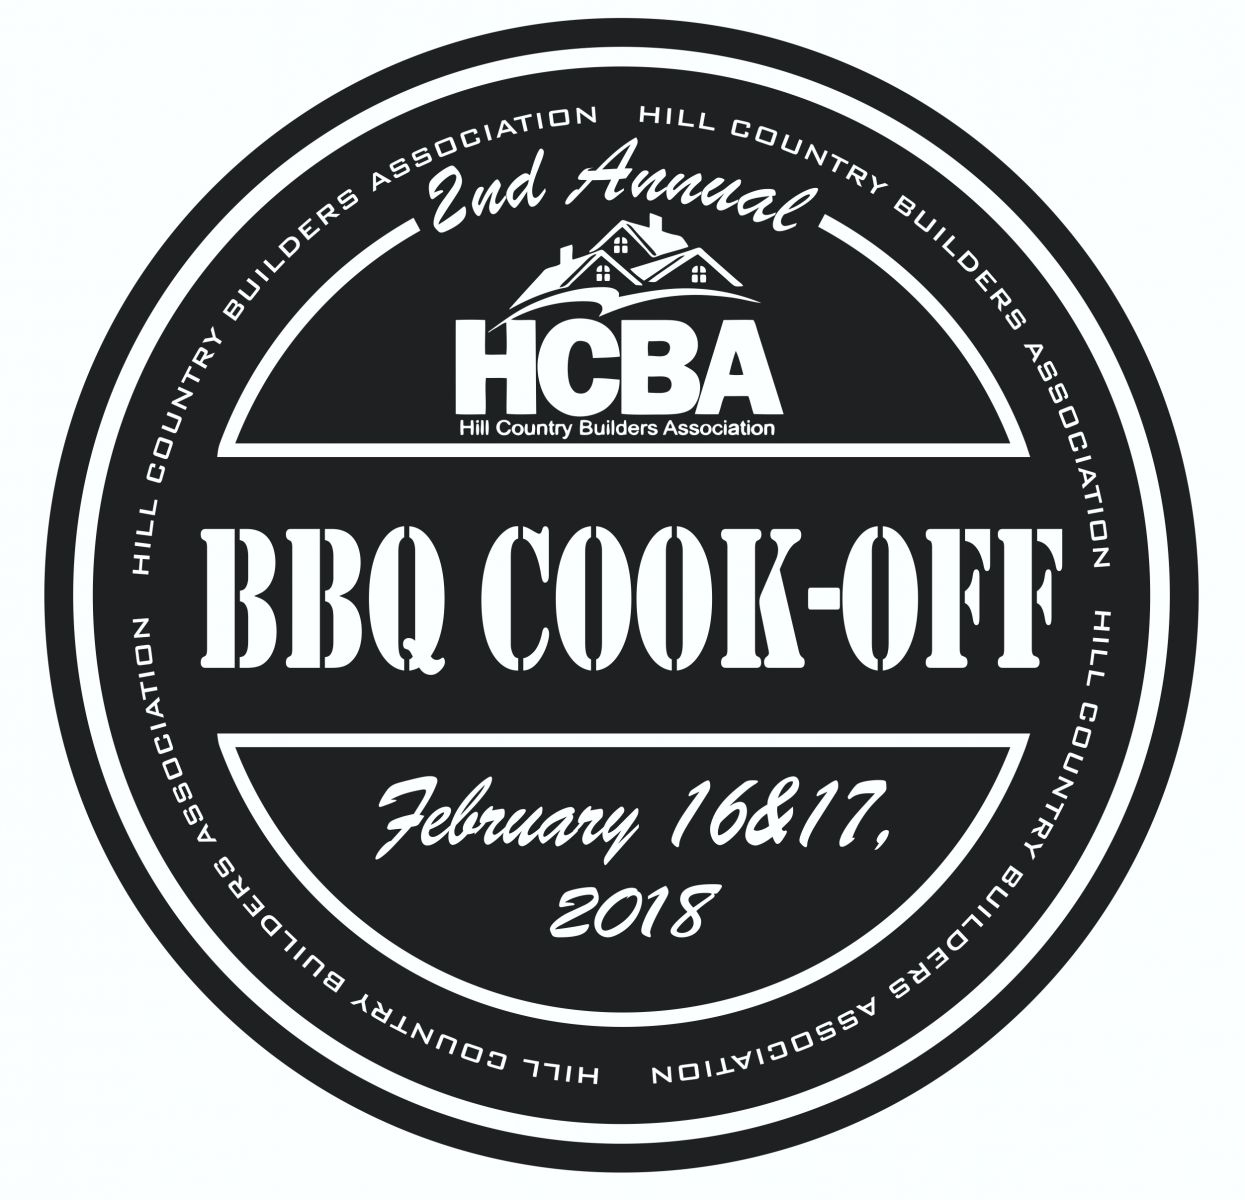 Register your BBQ Team for the 2nd Annual HCBA BBQ Cook-Off